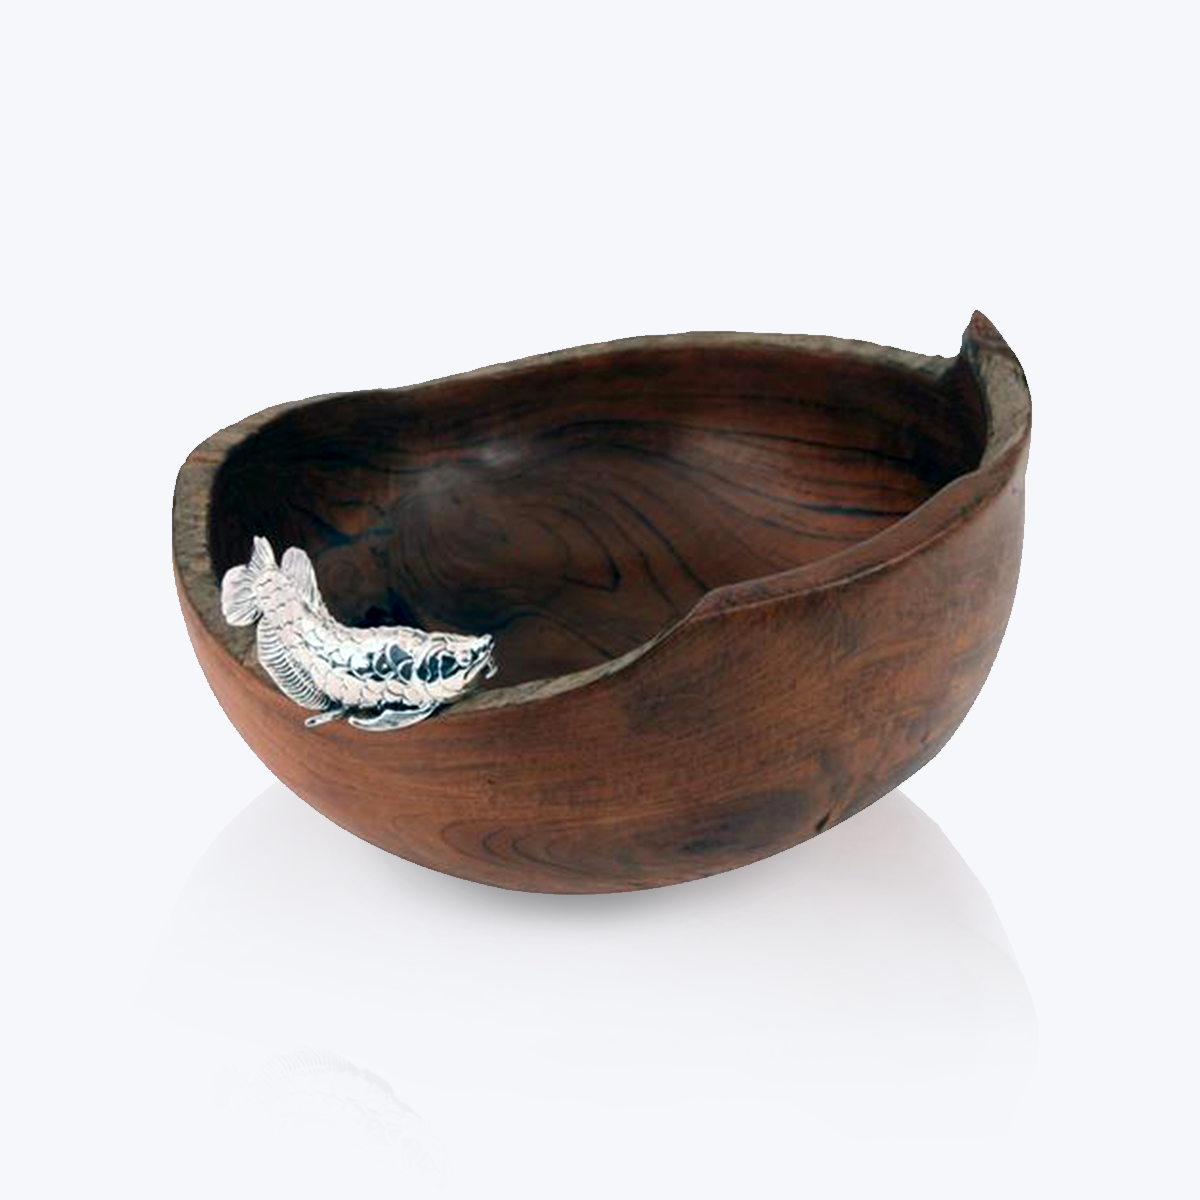 Teak Wood Bowl with Silver Arowana